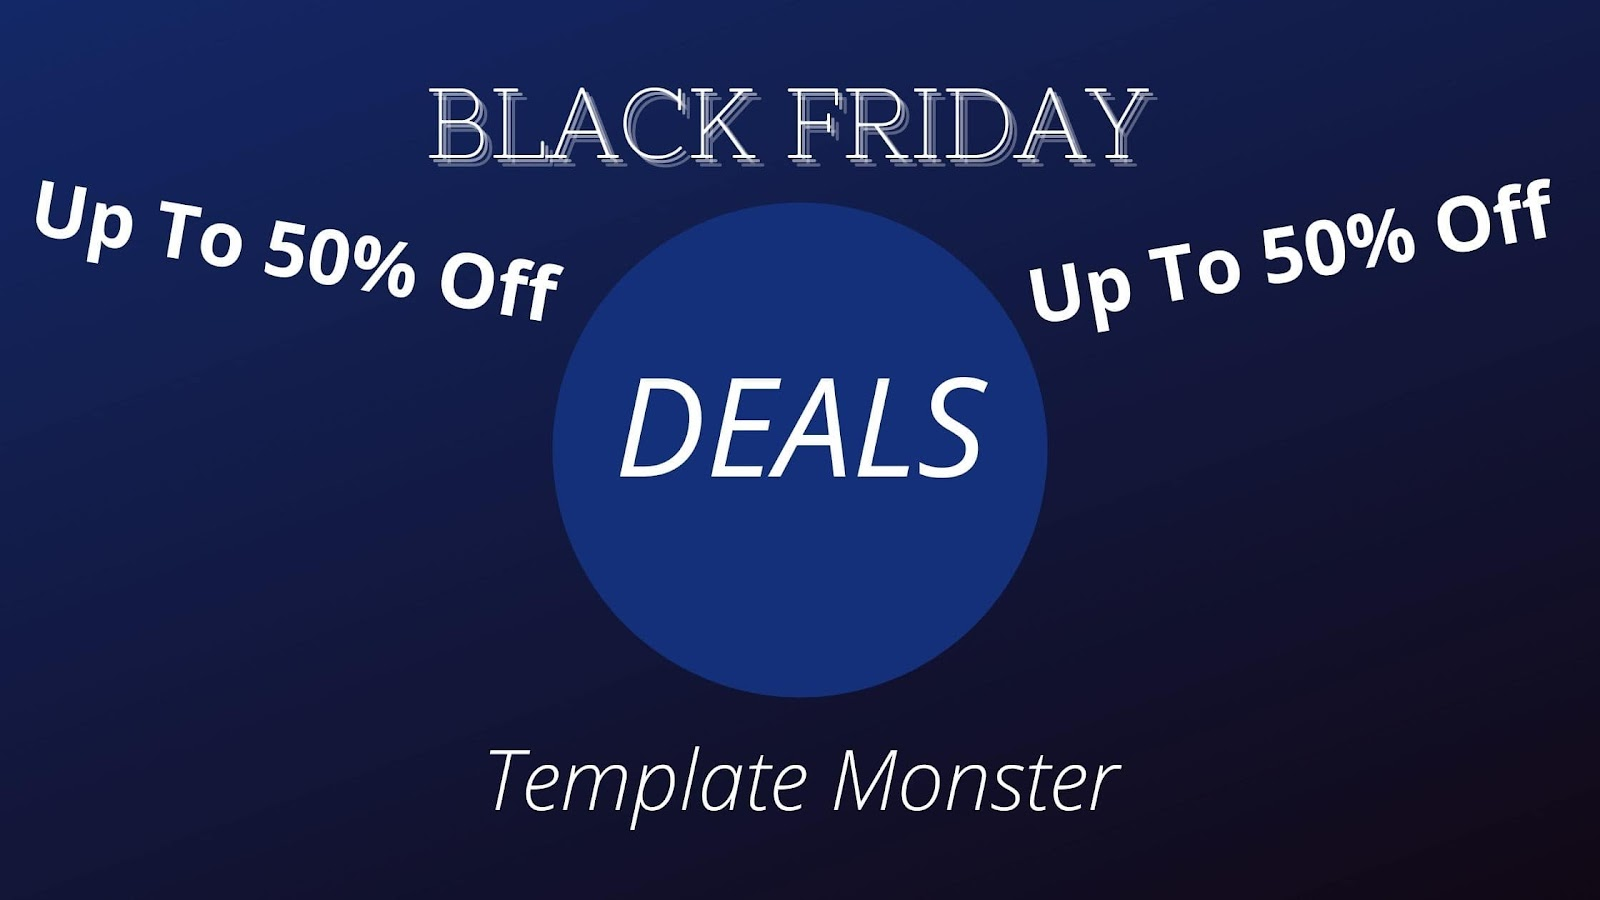 Template Monster: Get Up To 50% Off